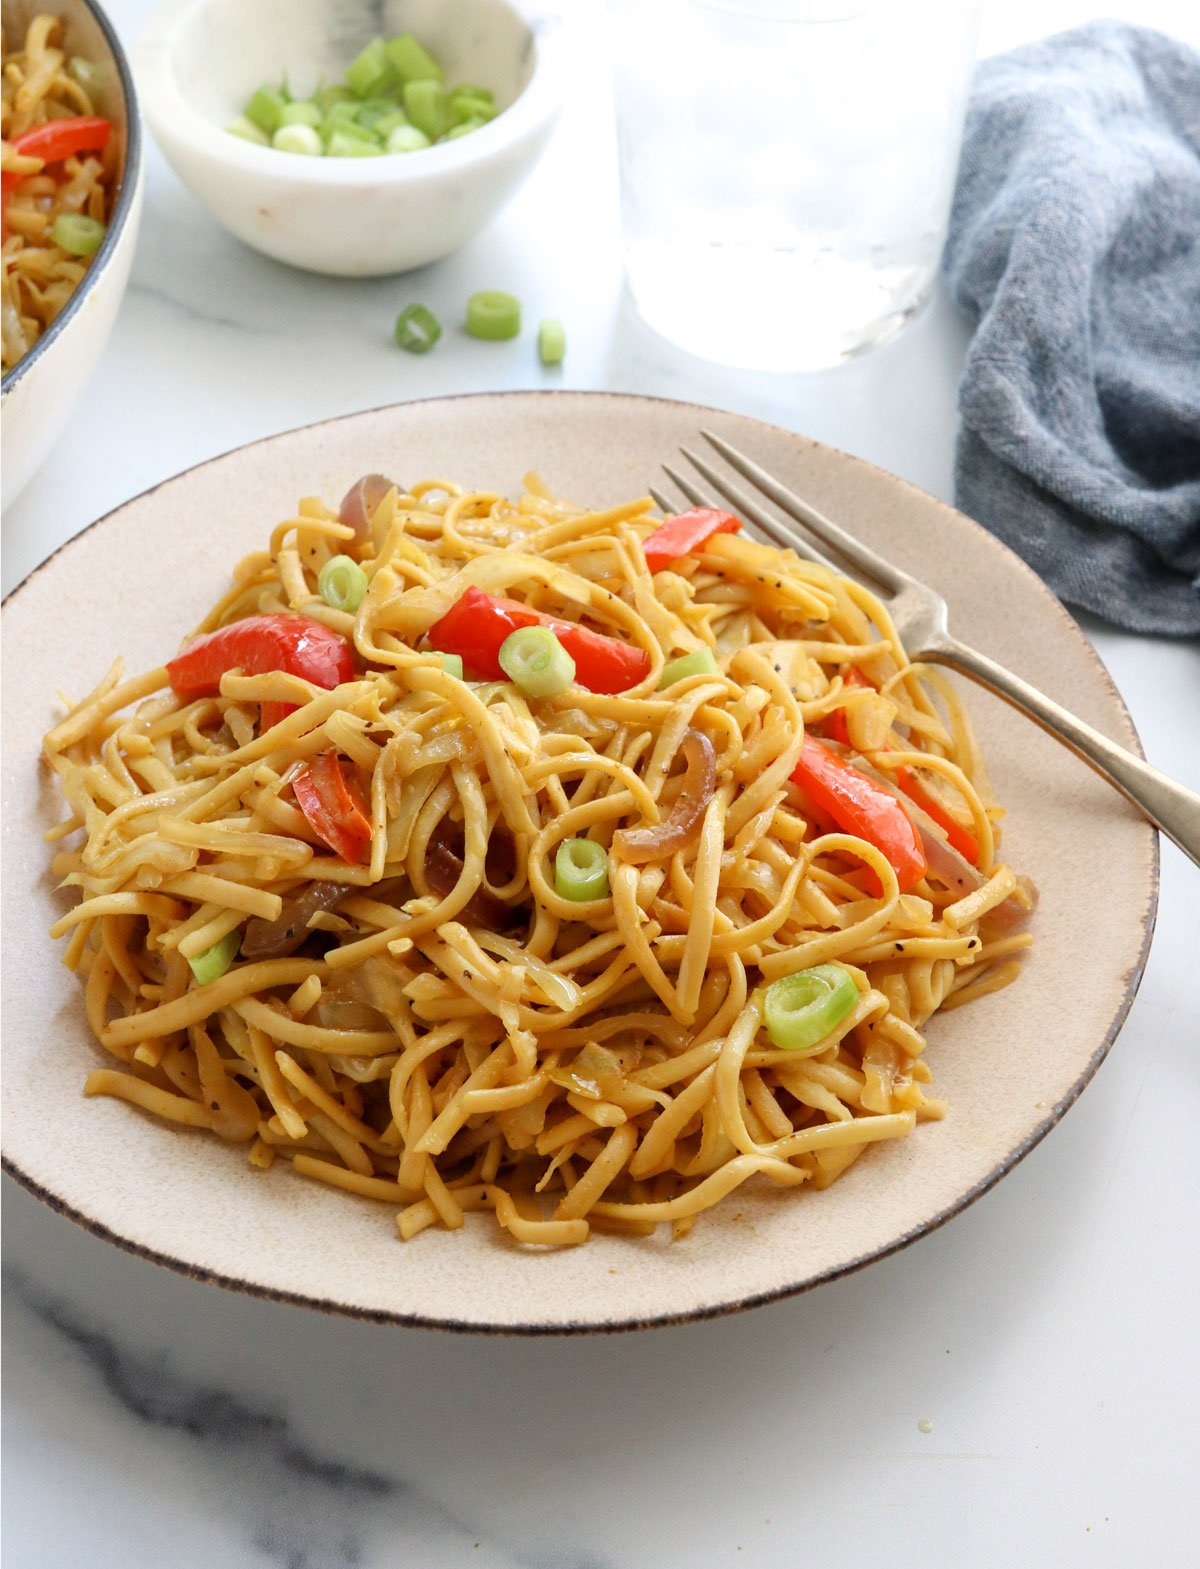 singapore noodles on plate with fork